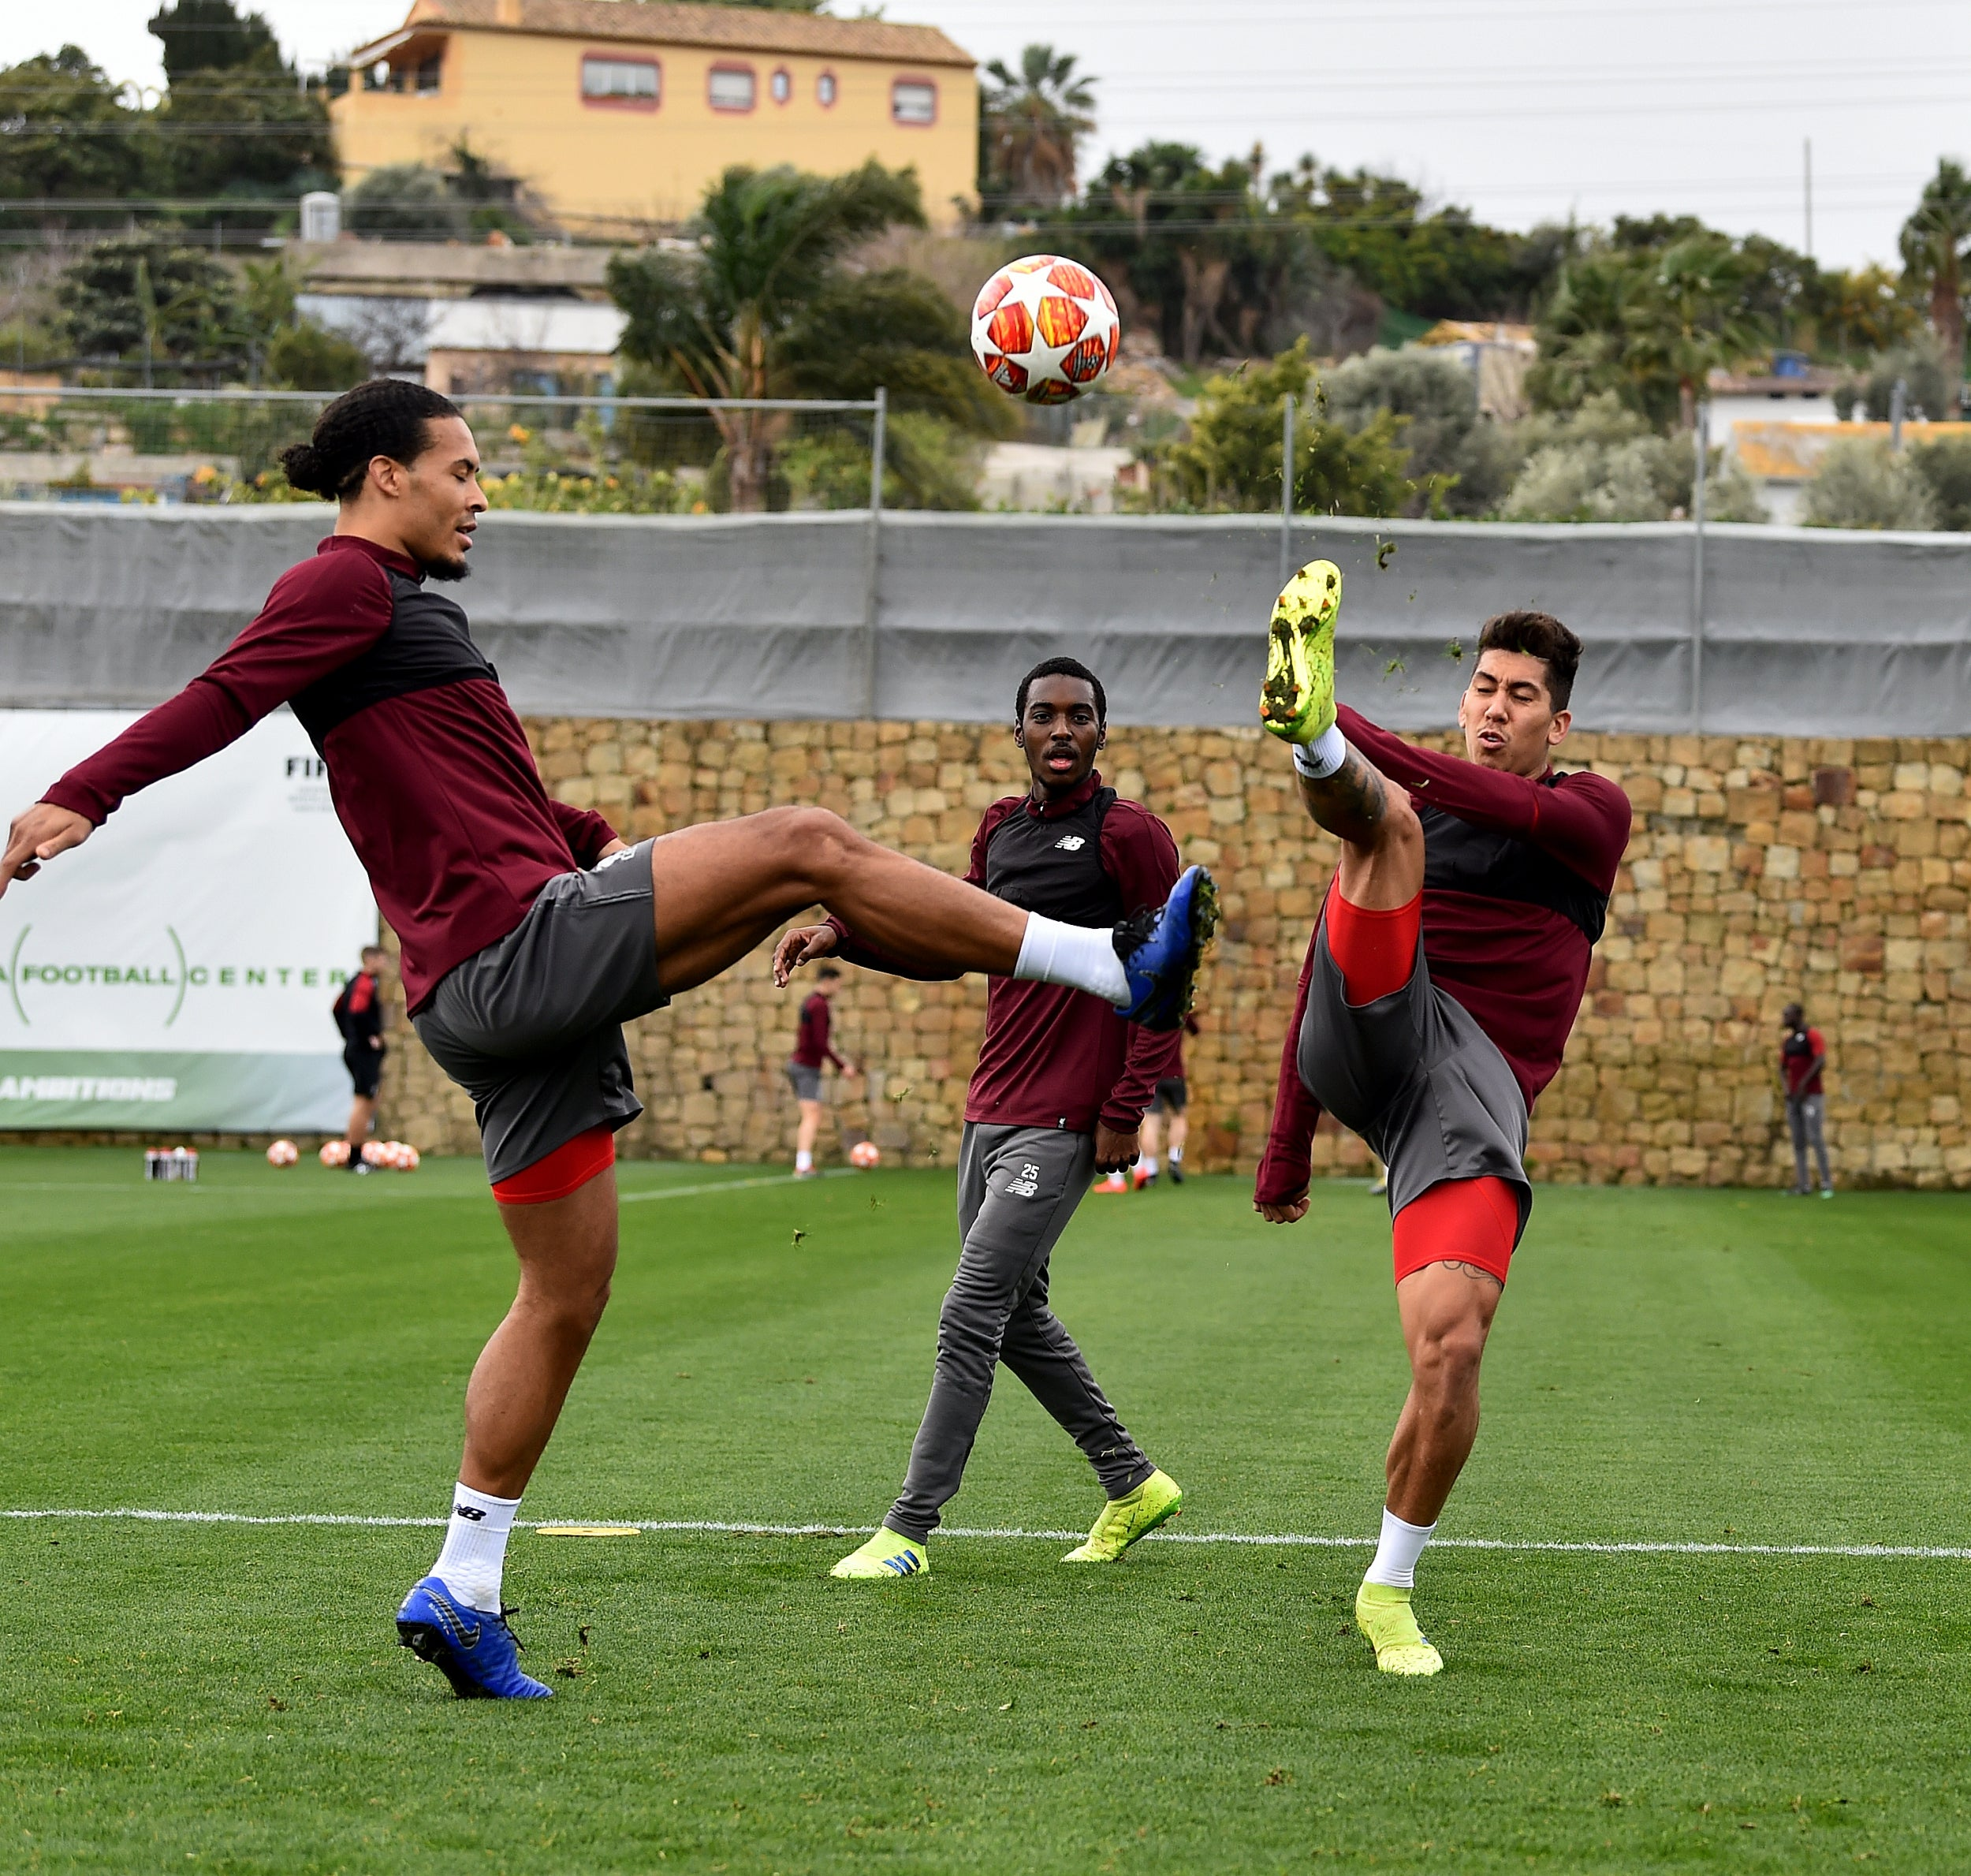 Inside Liverpool's Marbella training camp and what they worked on in